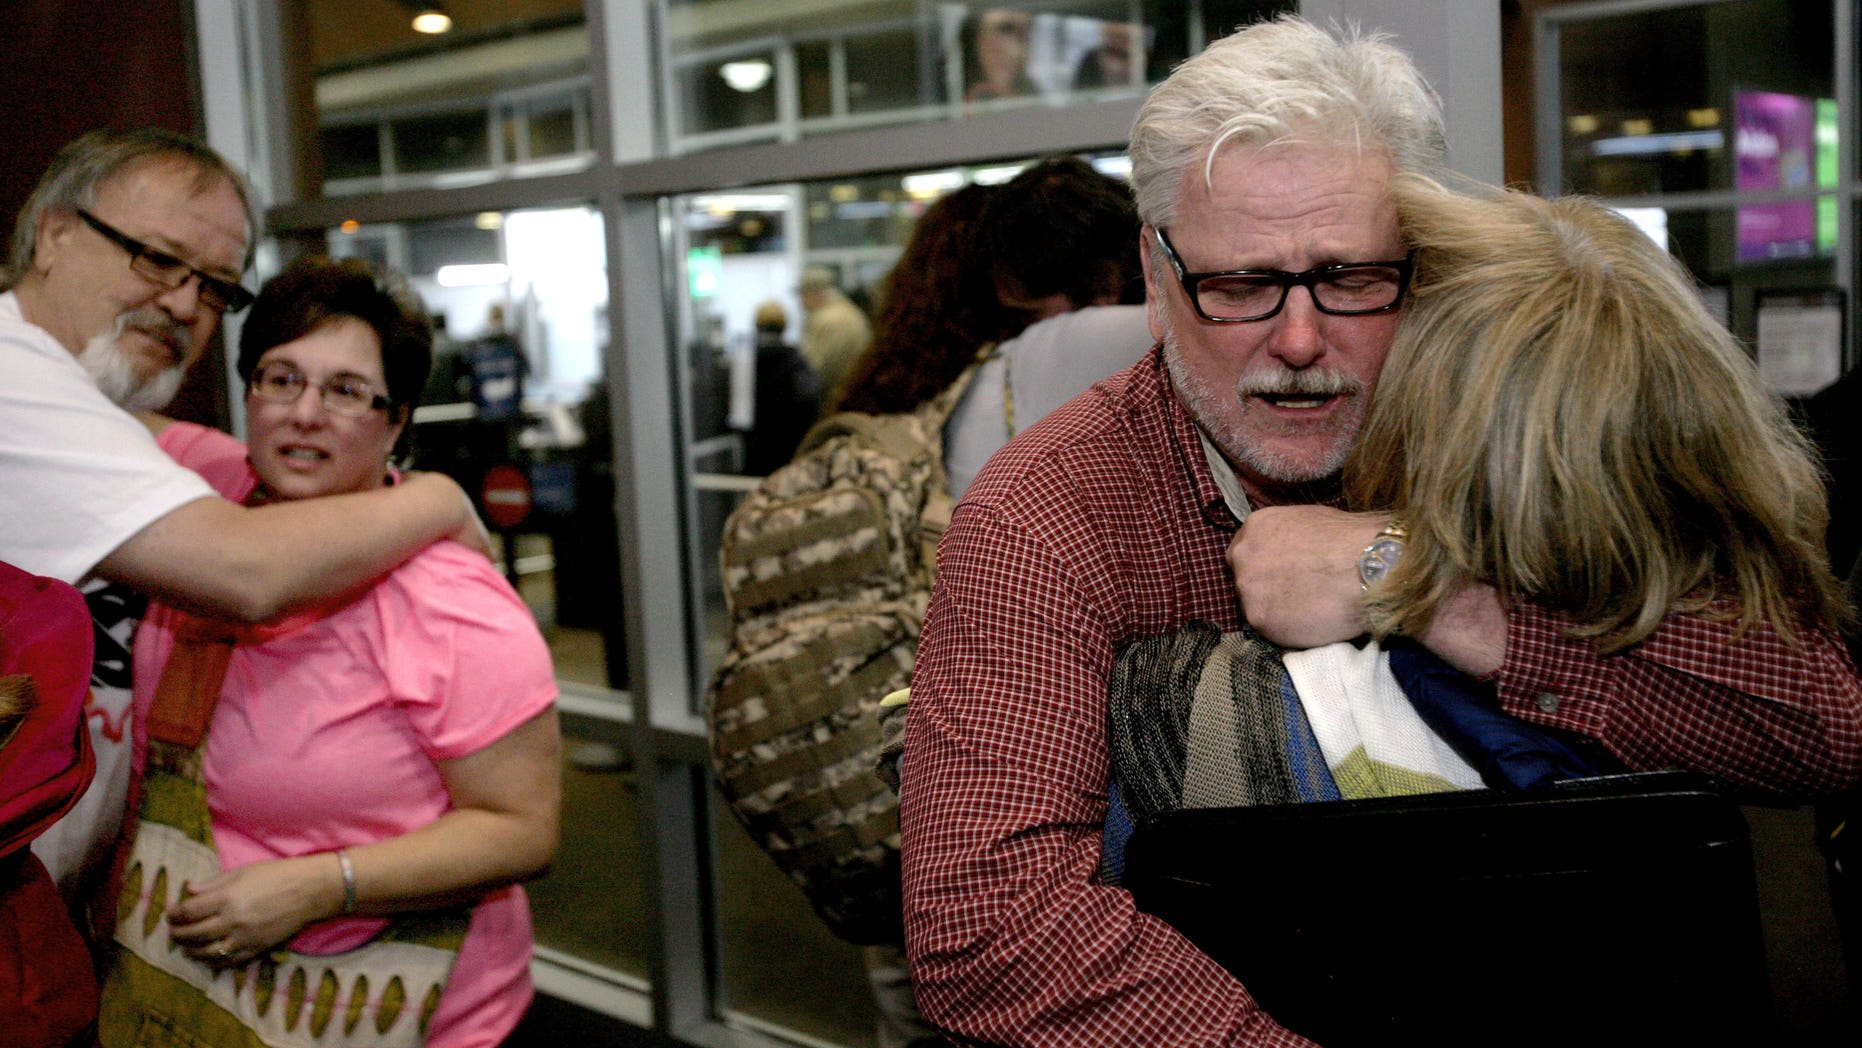 Freed aid workers Arlynn Hefta, right, and Kermit Paulson, left, embrace their wives at Hector International Airport, Tuesday, March 3, 2015 in Fargo, N.D.